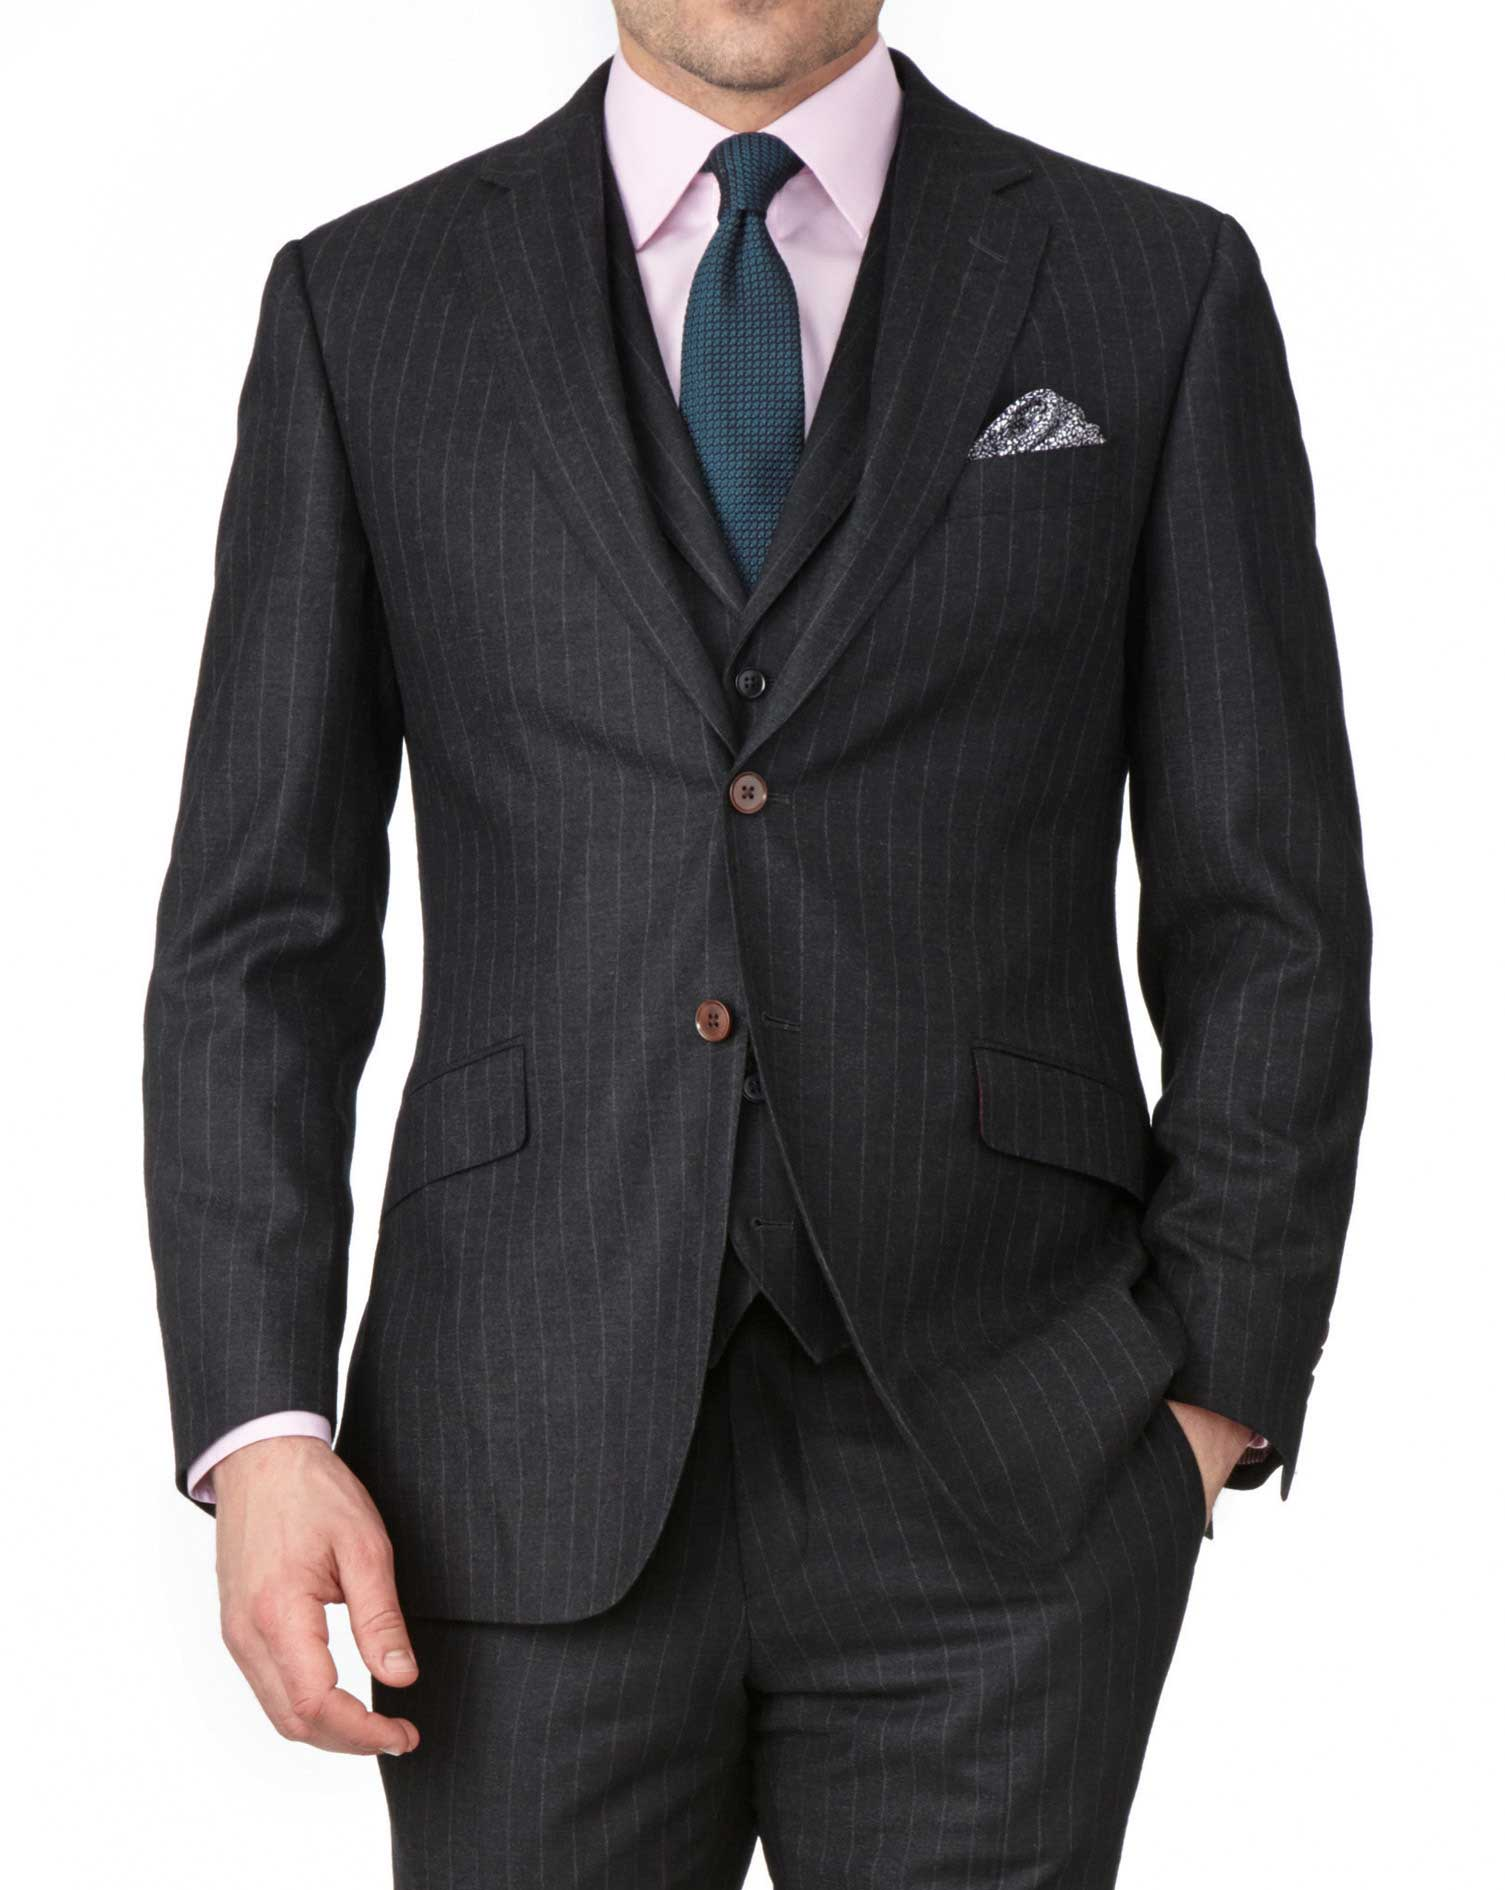 Charcoal Slim Fit Saxony Business Suit Wool Jacket Size 38 Short by Charles Tyrwhitt